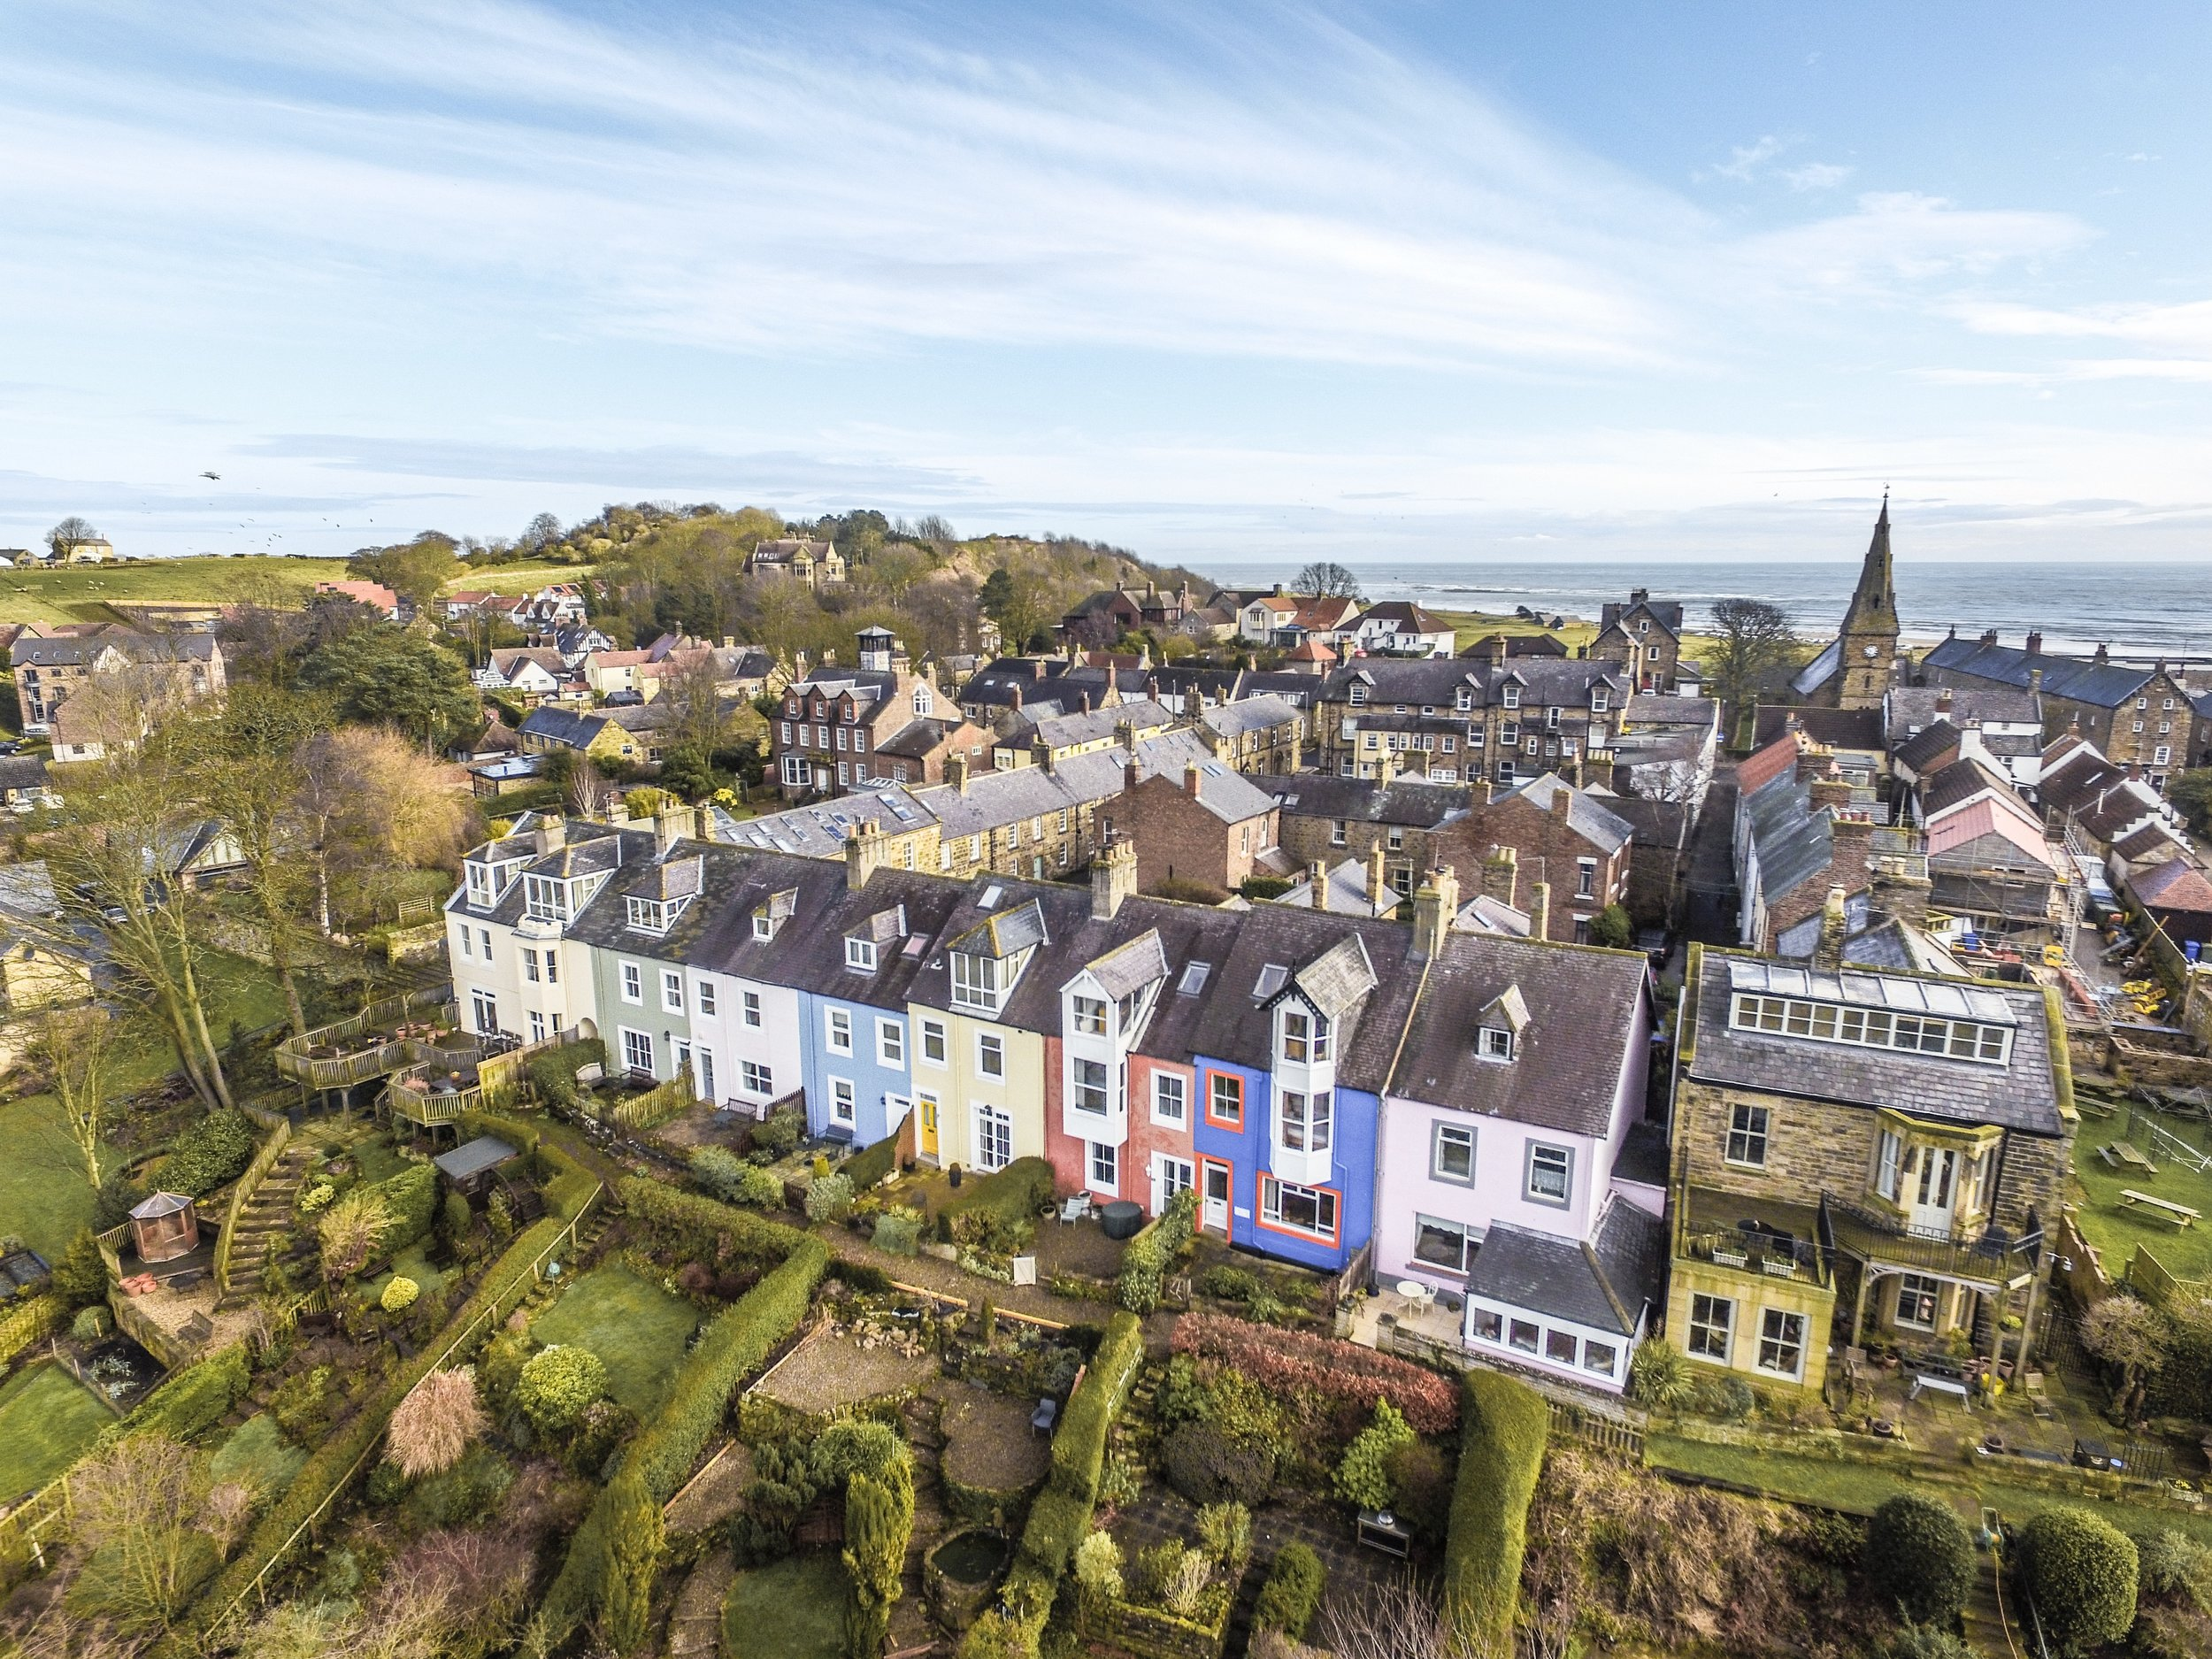 ALNMOUTH (3 Miles) - Gaily painted houses strung along the north bank of the River Aln estuary welcome you to picturesque Alnmouth. Bordered by one of Northumberland's best beaches.